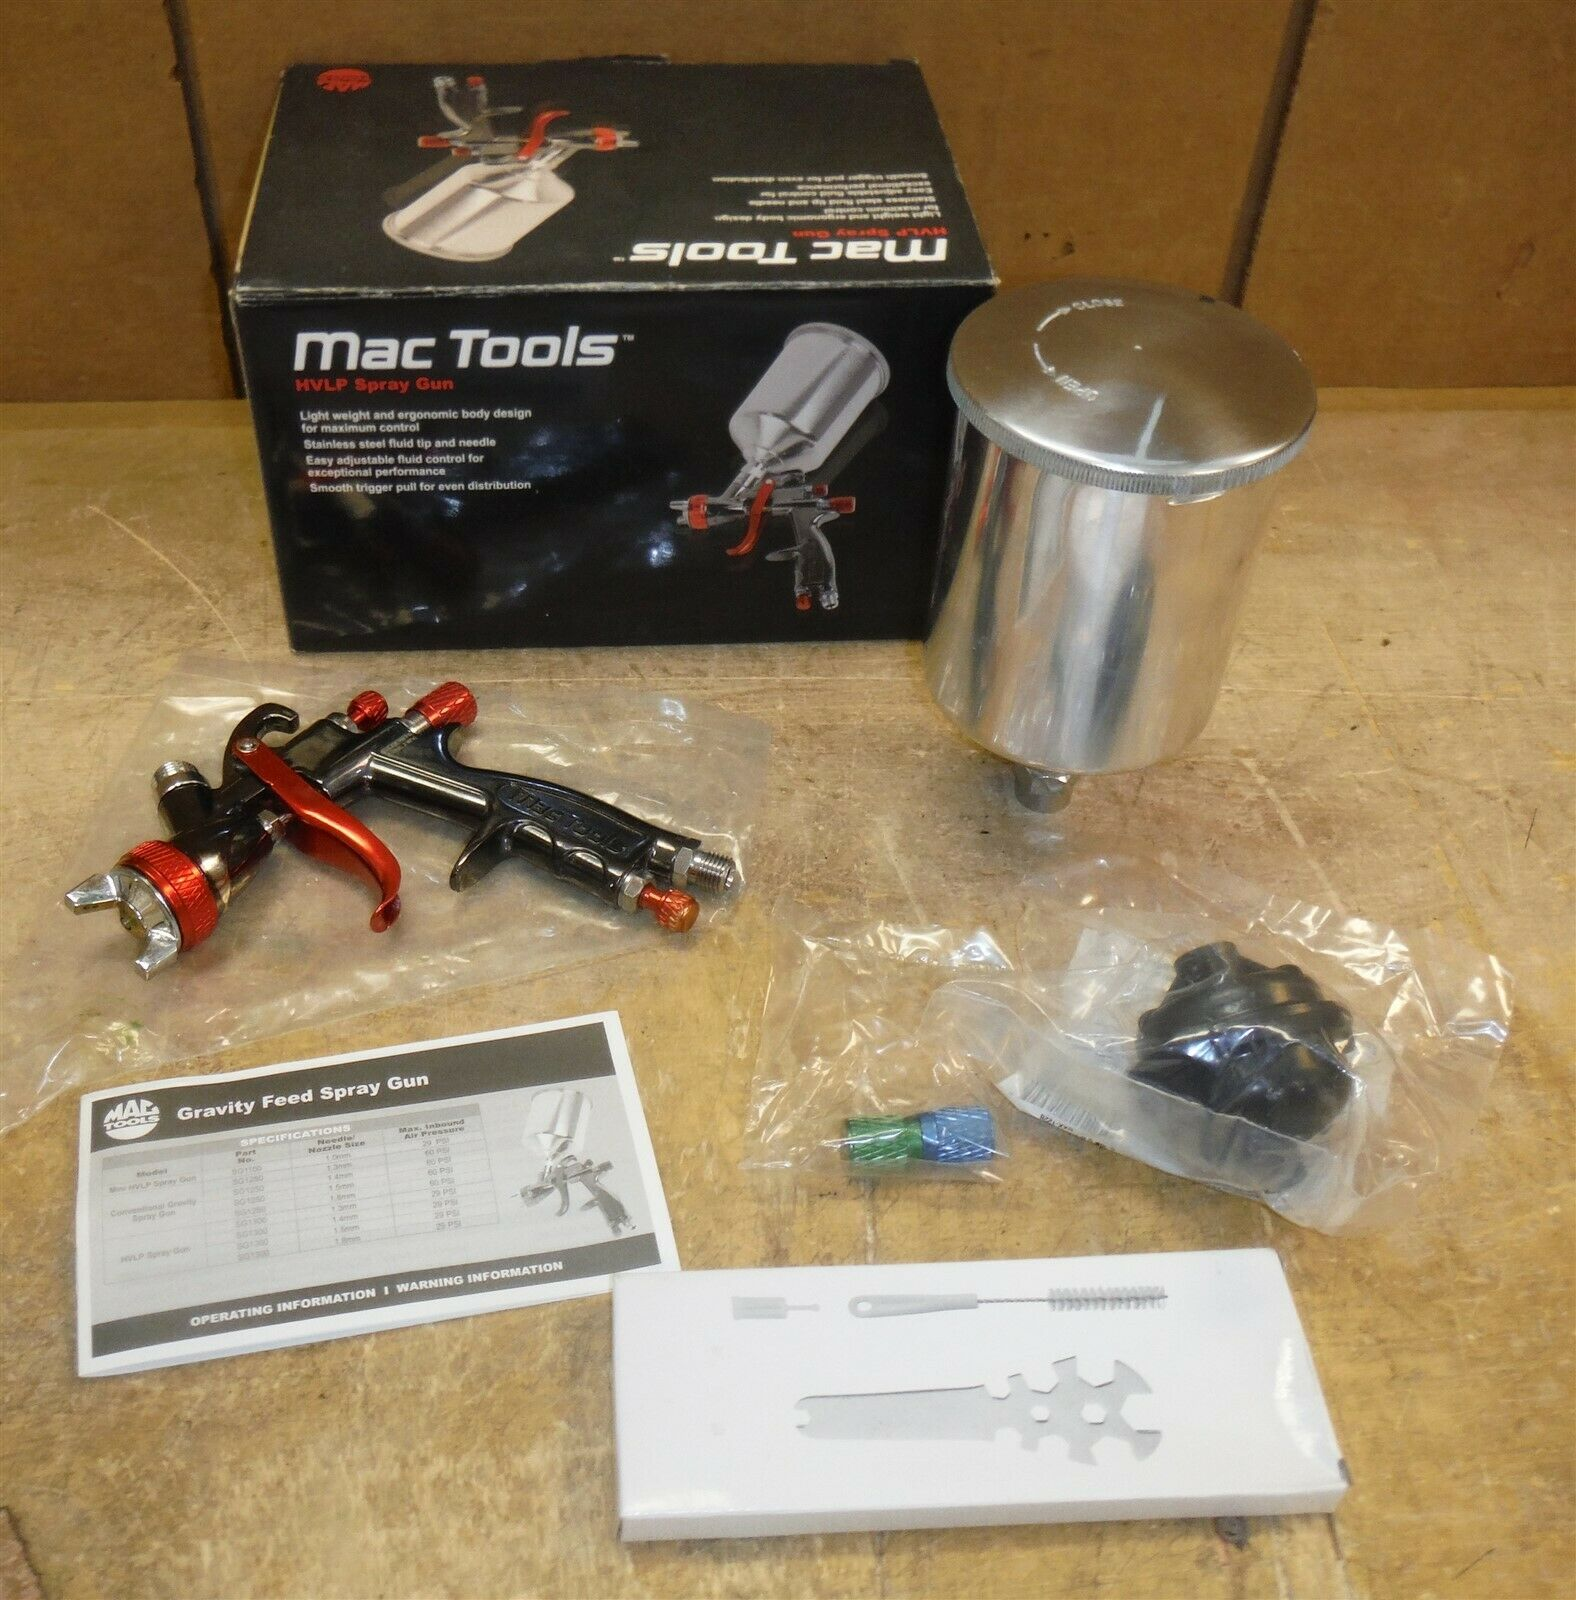 $ 57 - ?USED? Mac Tools SG1300-14 • HVLP Paint Gun 1.4 mm in Box FREE SHIP bw5